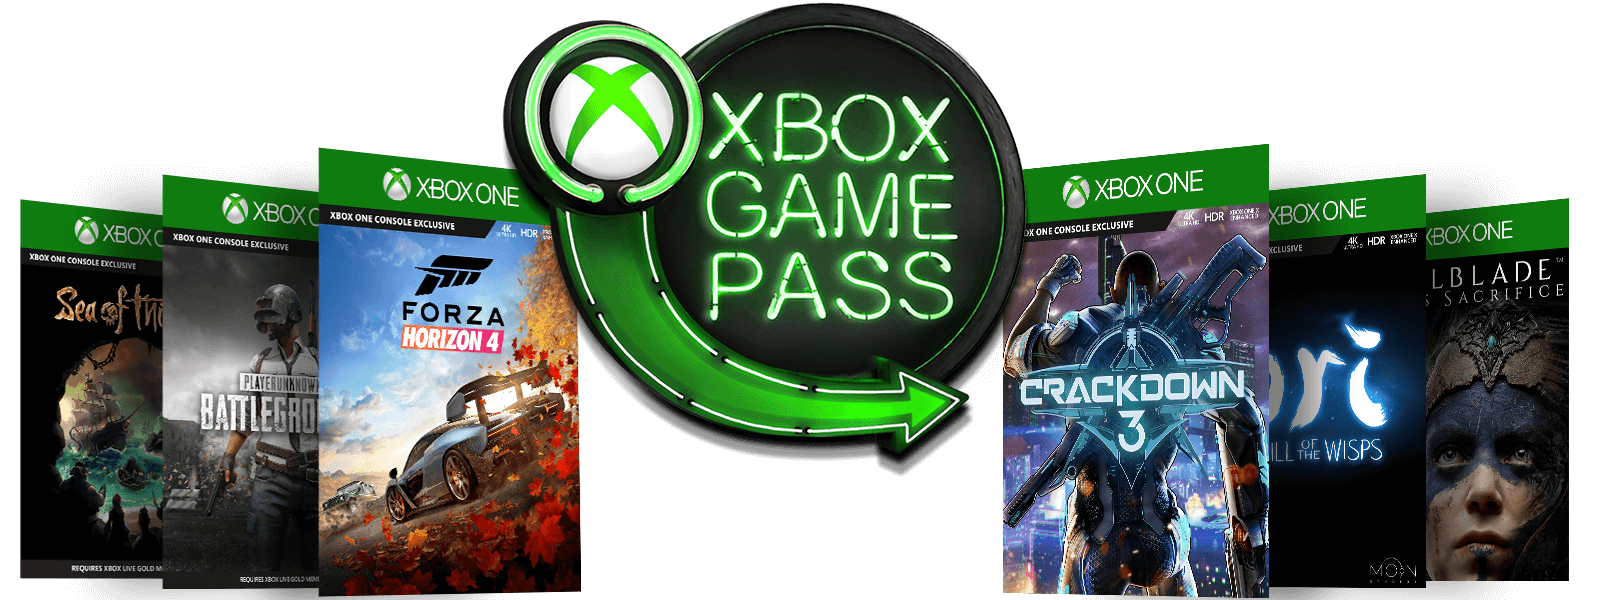 Xbox Game Pass neon sign with Xbox sphere logo and green arrow surrounded by six games: Sea of Thieves, PLAYERUNKNOWN'S BATTLEGROUND, Forza Horizon 4, Crackdown 3, Ori and the Will of the Wisps, and Hellblade: Senua's Sacrifice